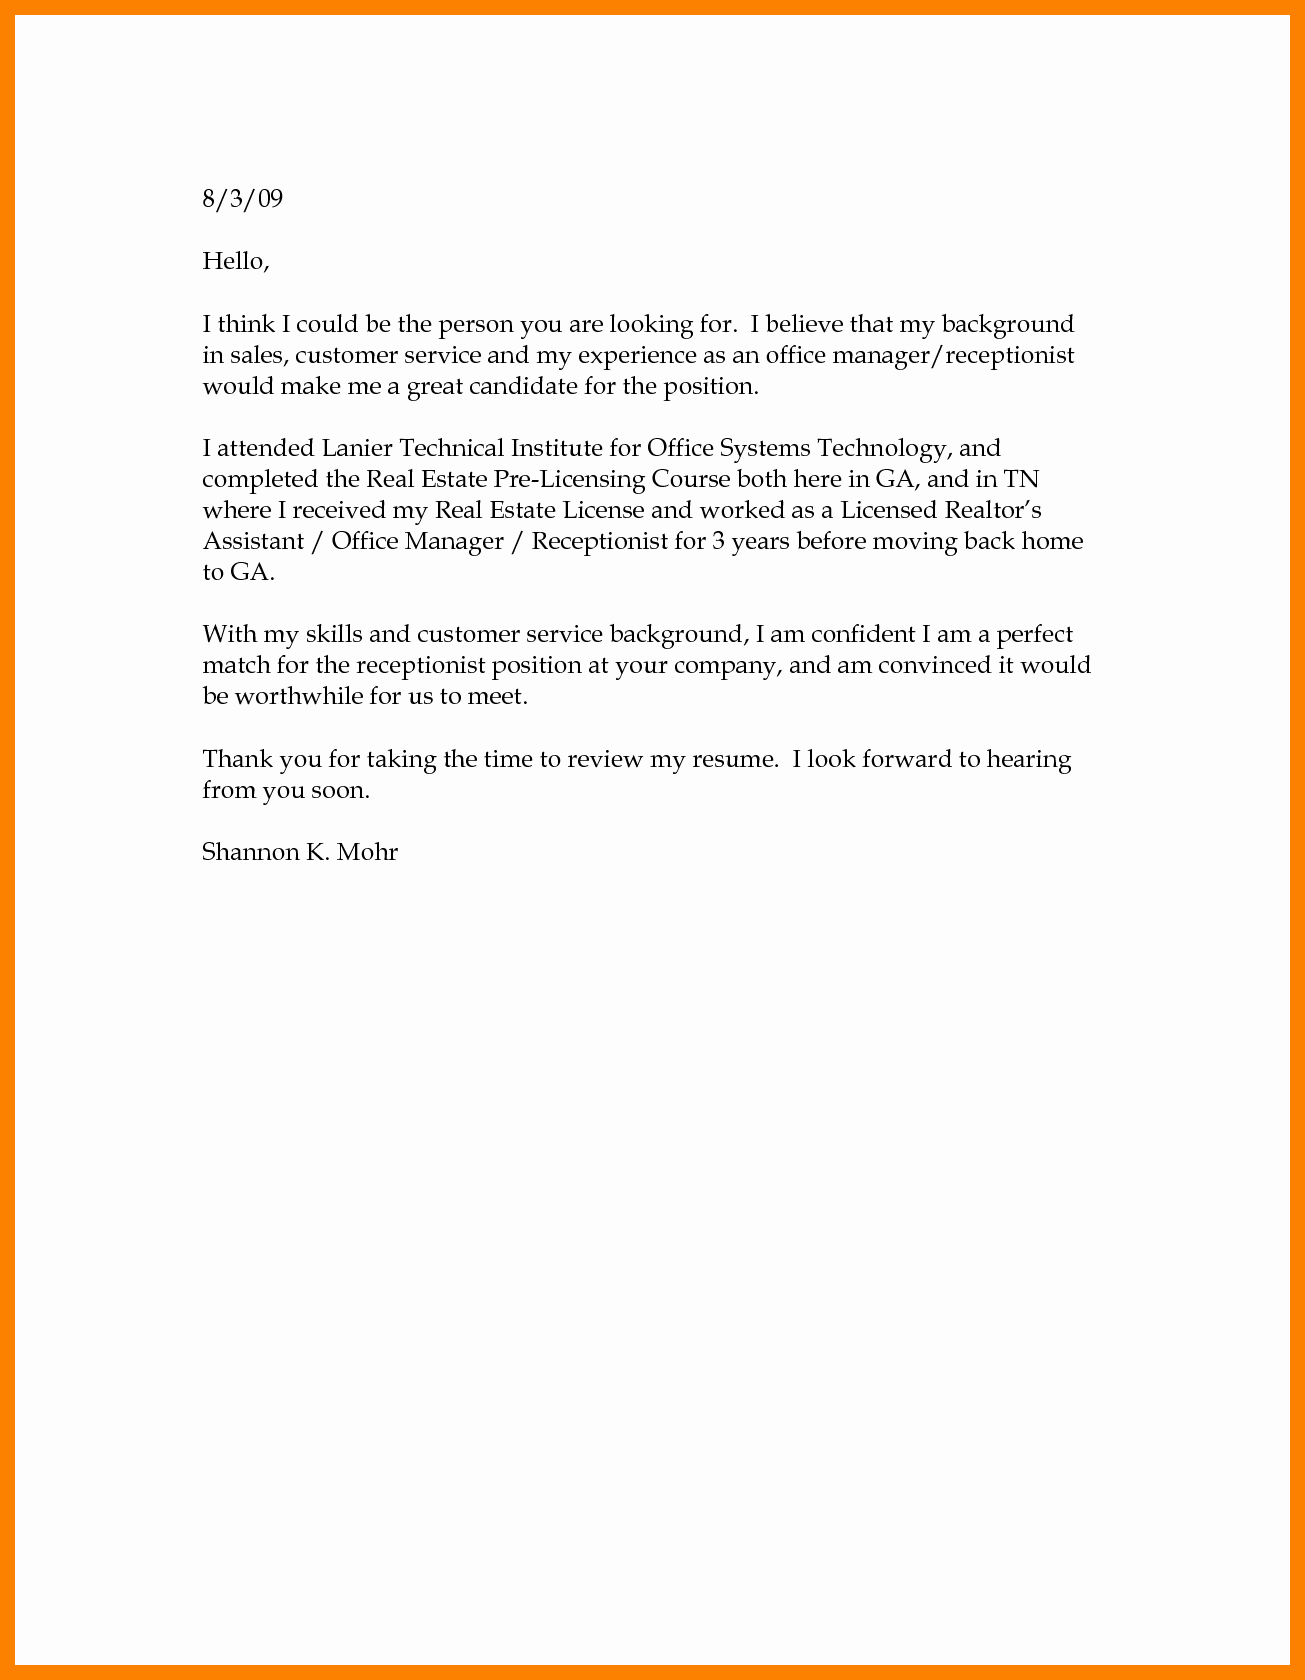 Basic Resume Cover Letter Examples Inspirational Basic Cover Letter Structure